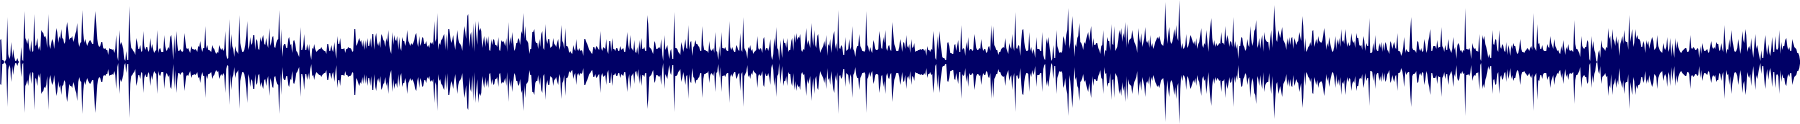 waveform of track #70698